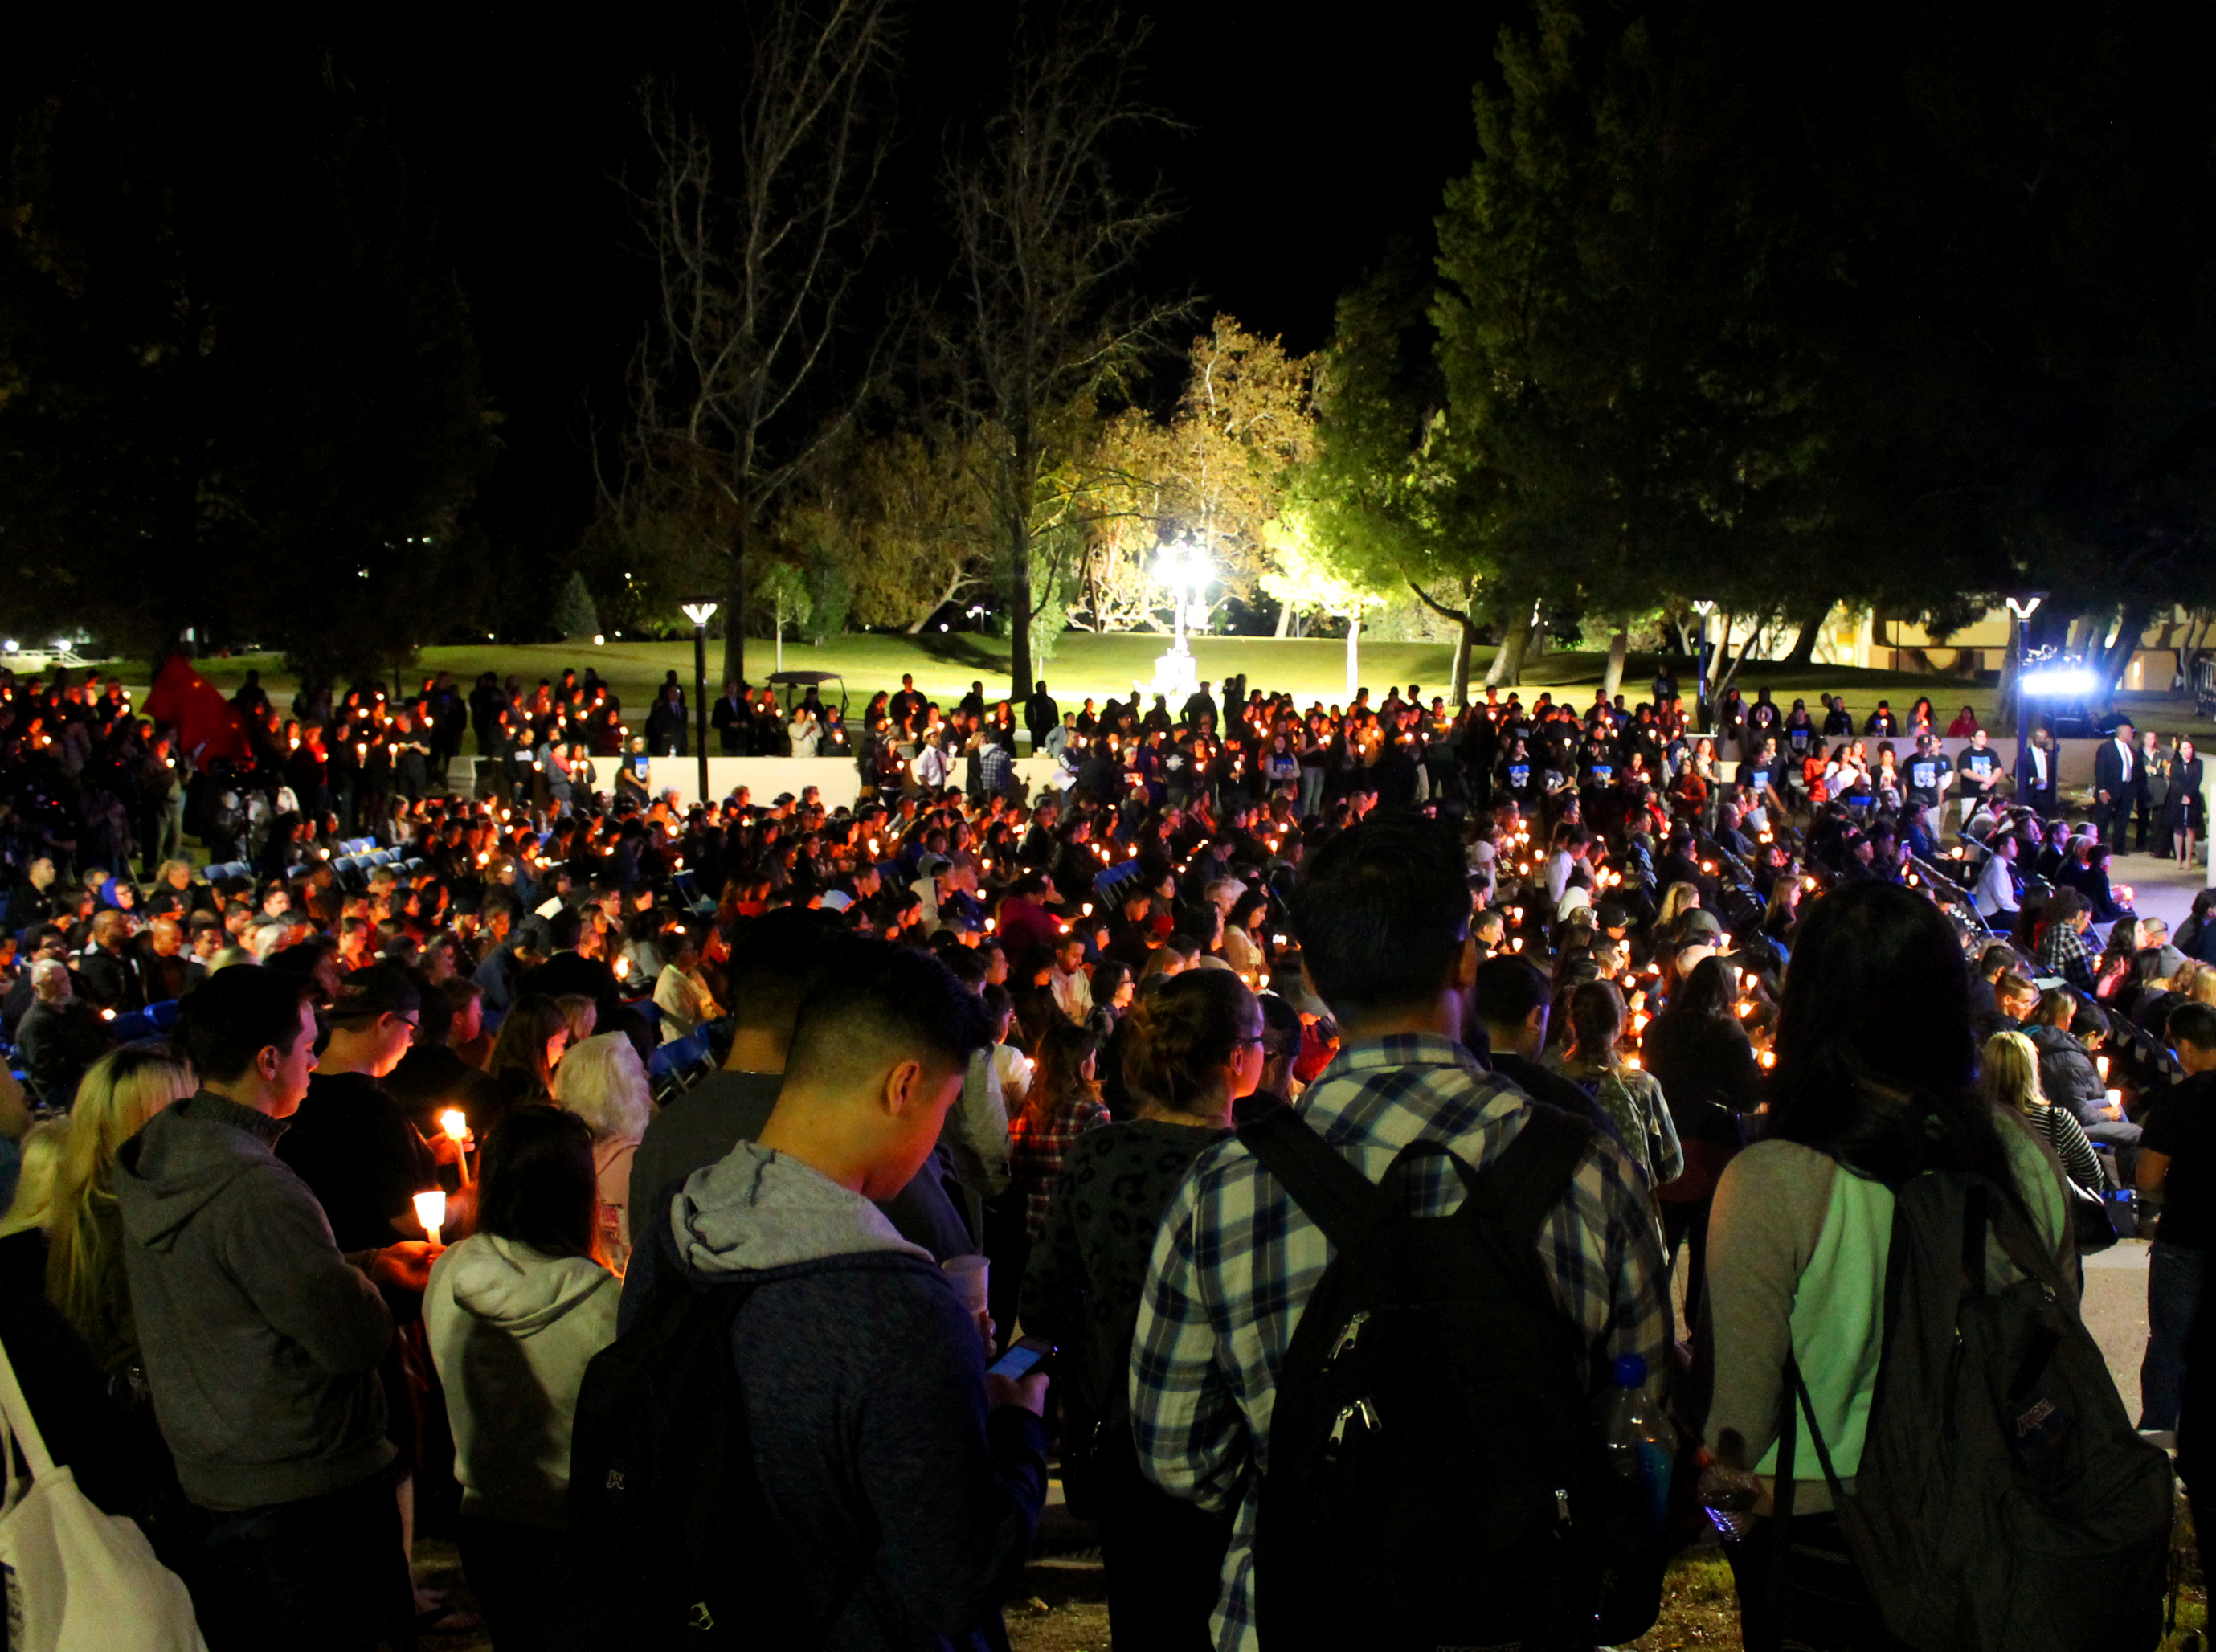 CSUSB honors victims with candlelight vigil